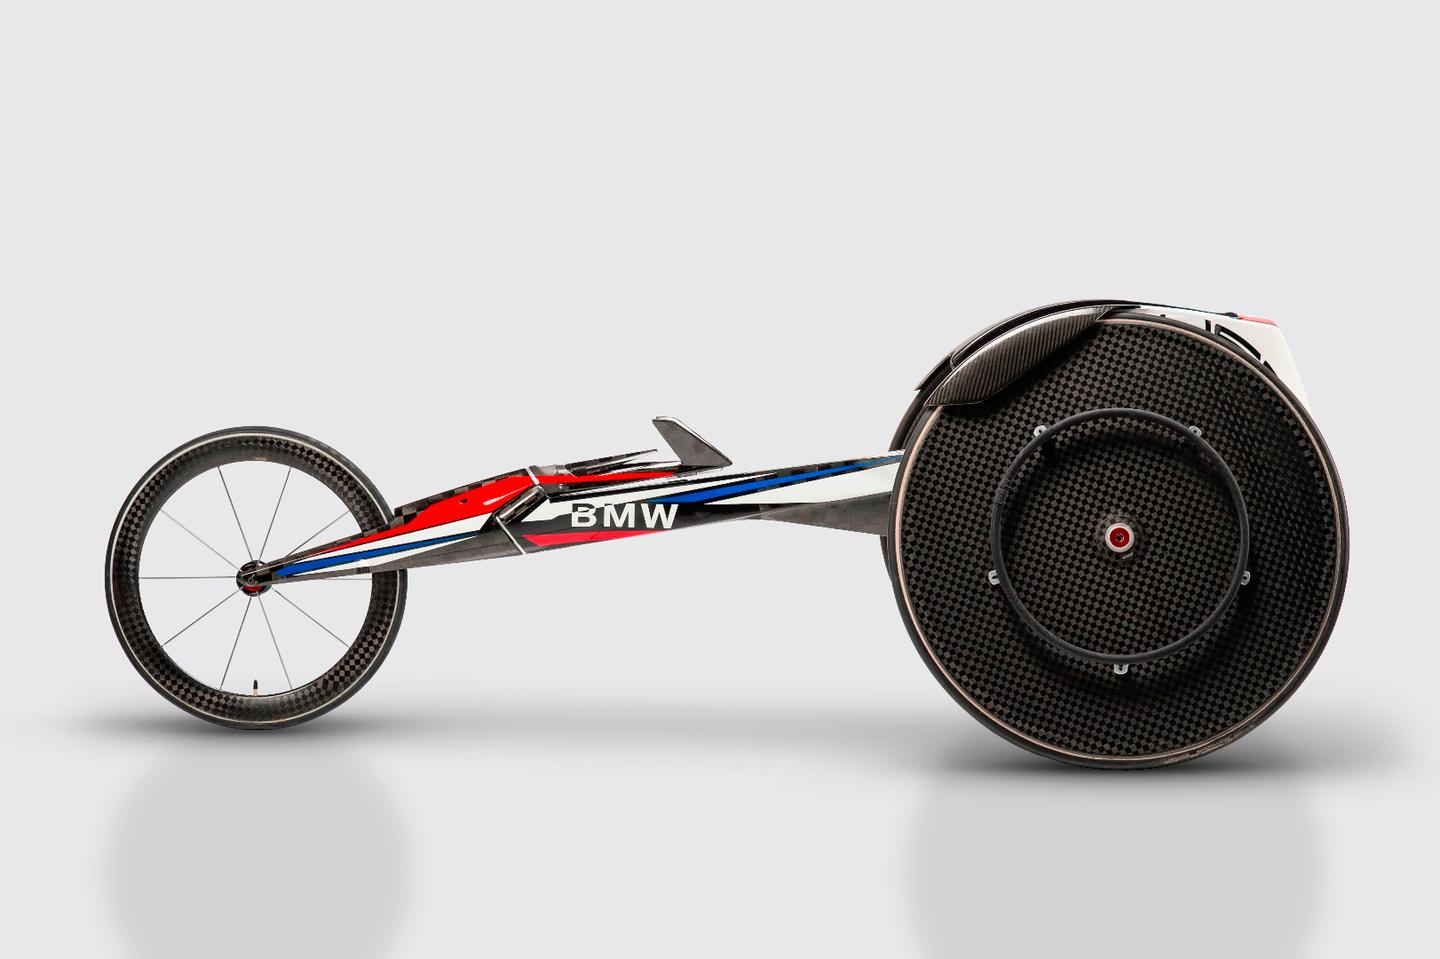 BMW is finishing up the racing wheelchair and will ship it to Team USA this summer